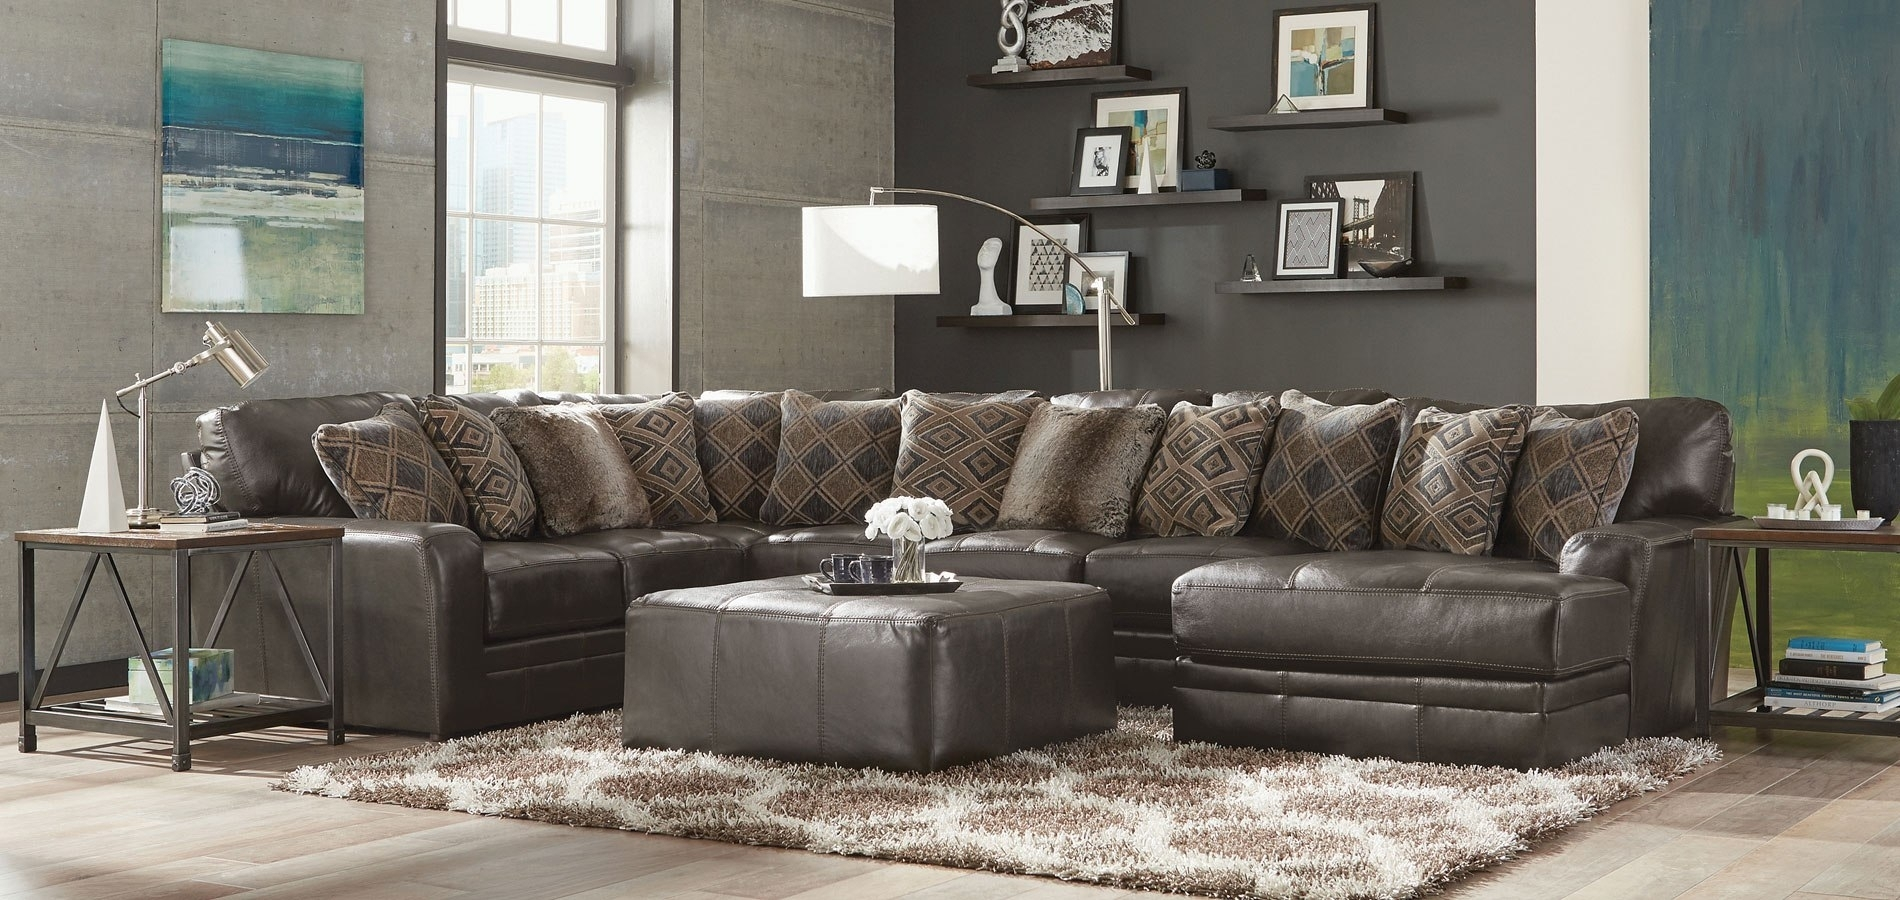 Denali Modular Sectional (Steel) Jackson Furniture   Furniture Cart For Denali Charcoal Grey 6 Piece Reclining Sectionals With 2 Power Headrests (Image 18 of 25)